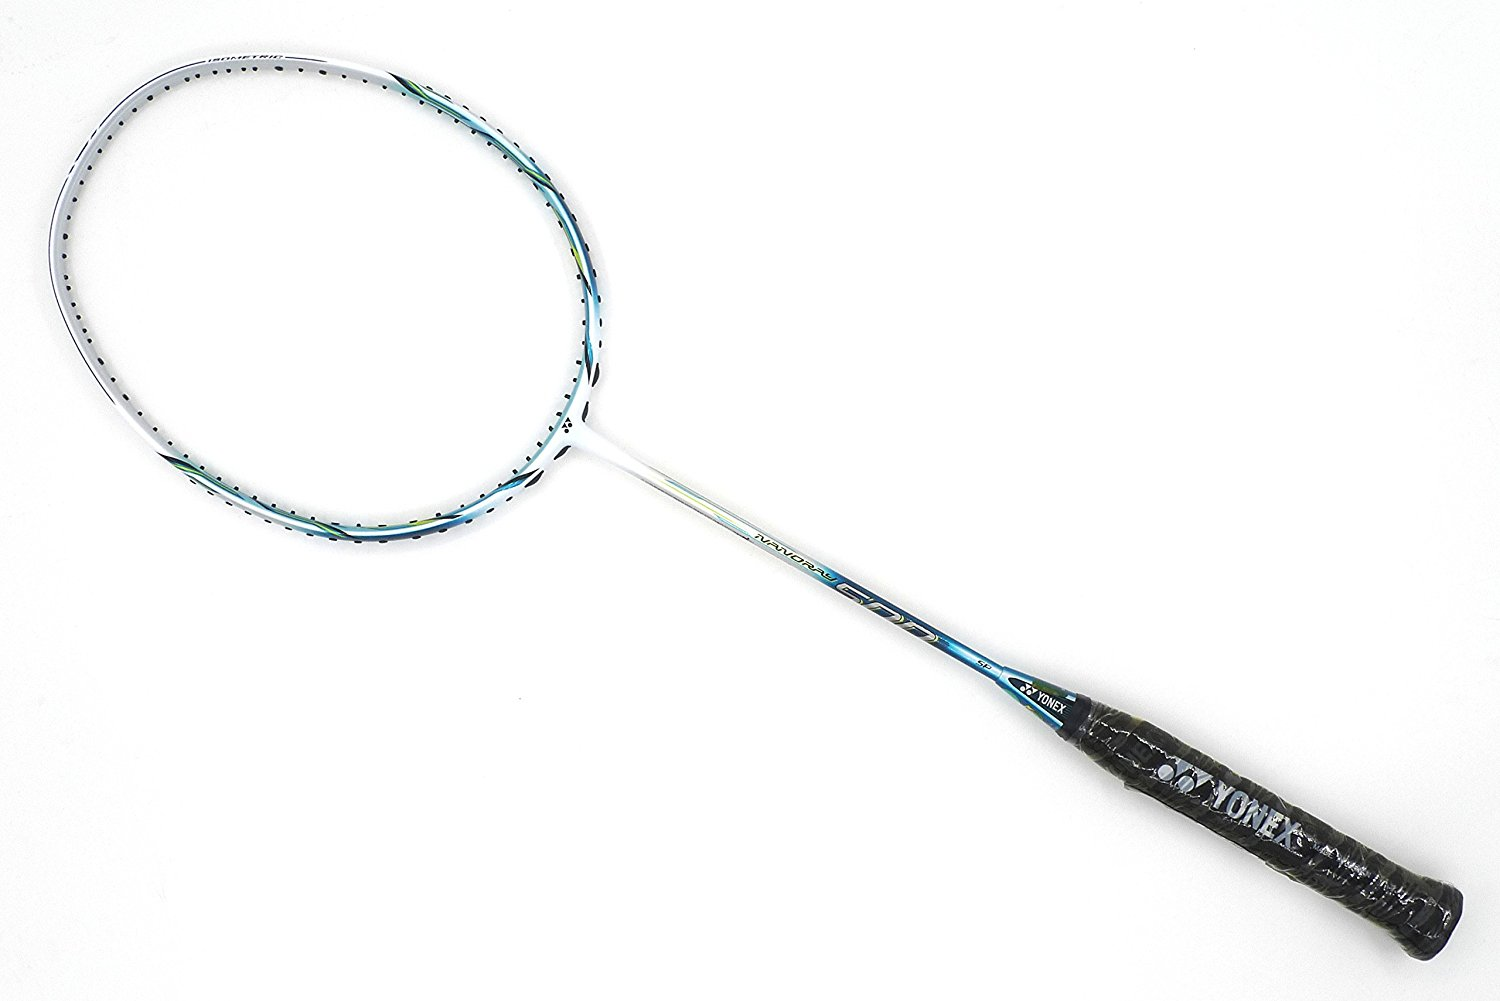 Yonex NANORAY 500 Badminton Racket NR500 SP (4U-G5)